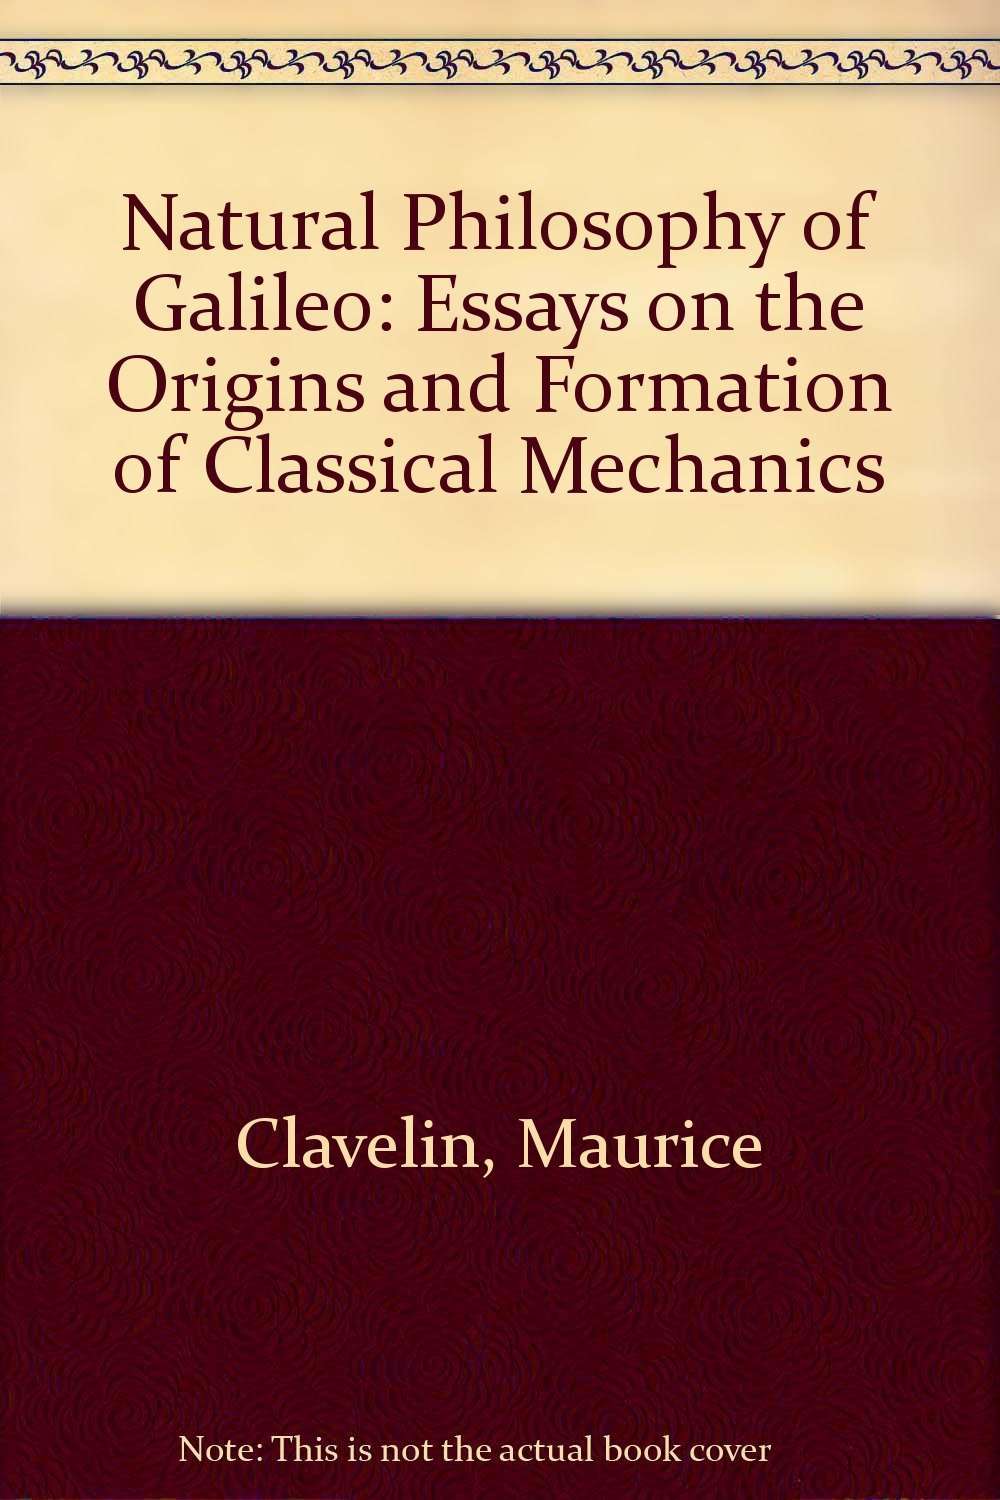 natural philosophy of galileo essays on the origins and formation natural philosophy of galileo essays on the origins and formation of classical mechanics maurice clavelin 9780262030502 com books